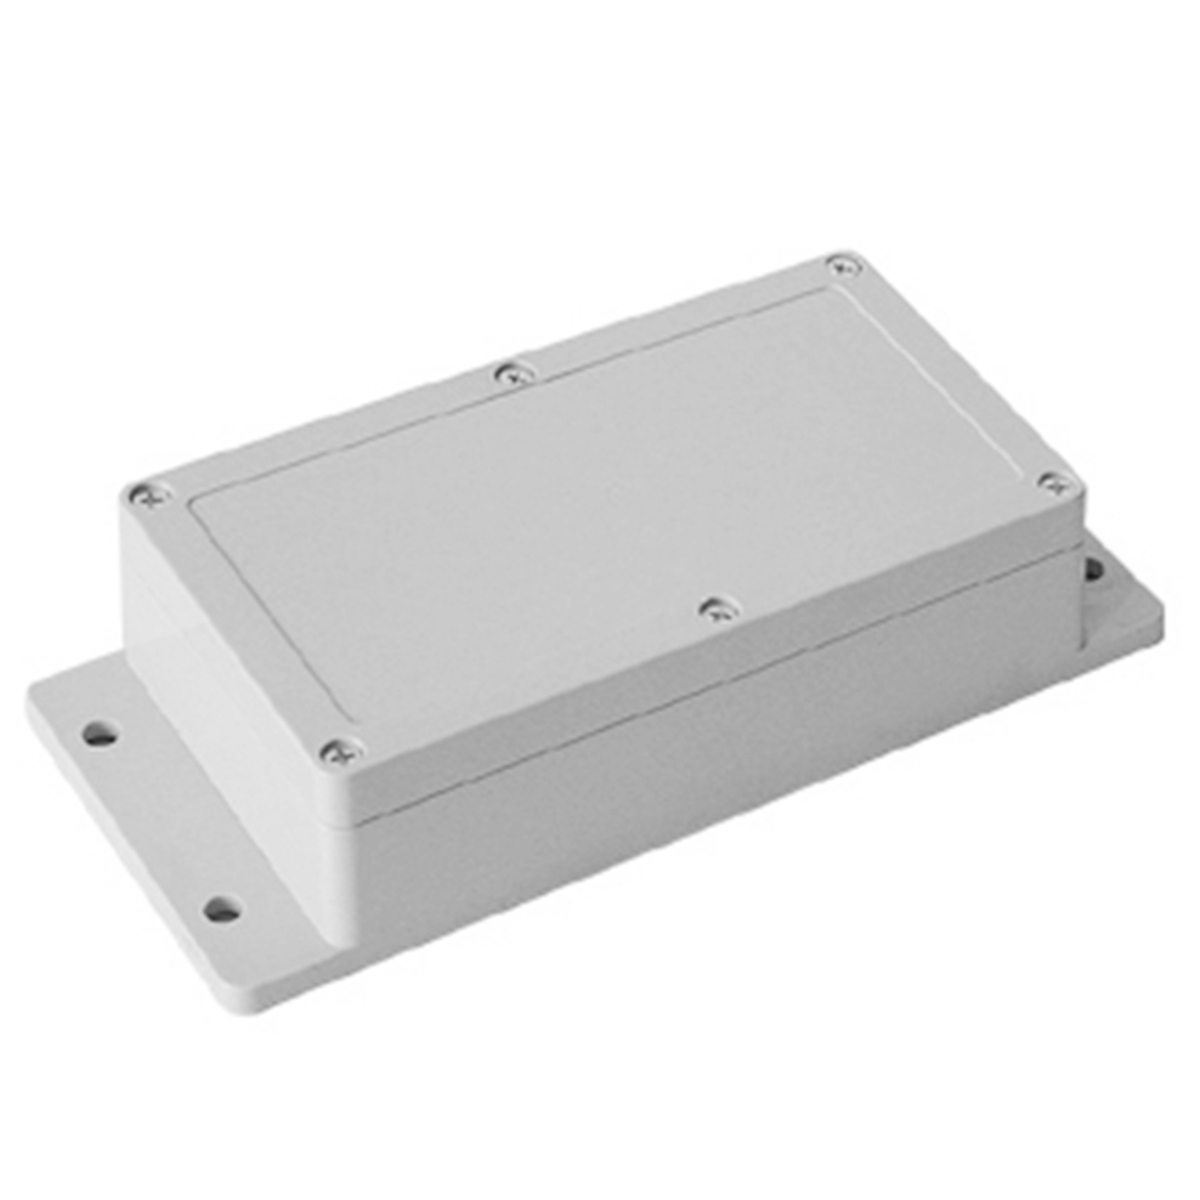 New Power Junction Box White Waterproof Plastic Enclosure Case 158mmx90mmx46mm with 6pcs Screws and 1pc Sealed Line white waterproof plastic enclosure box electric power junction case 158mmx90mmx46mm with 6pcs screws